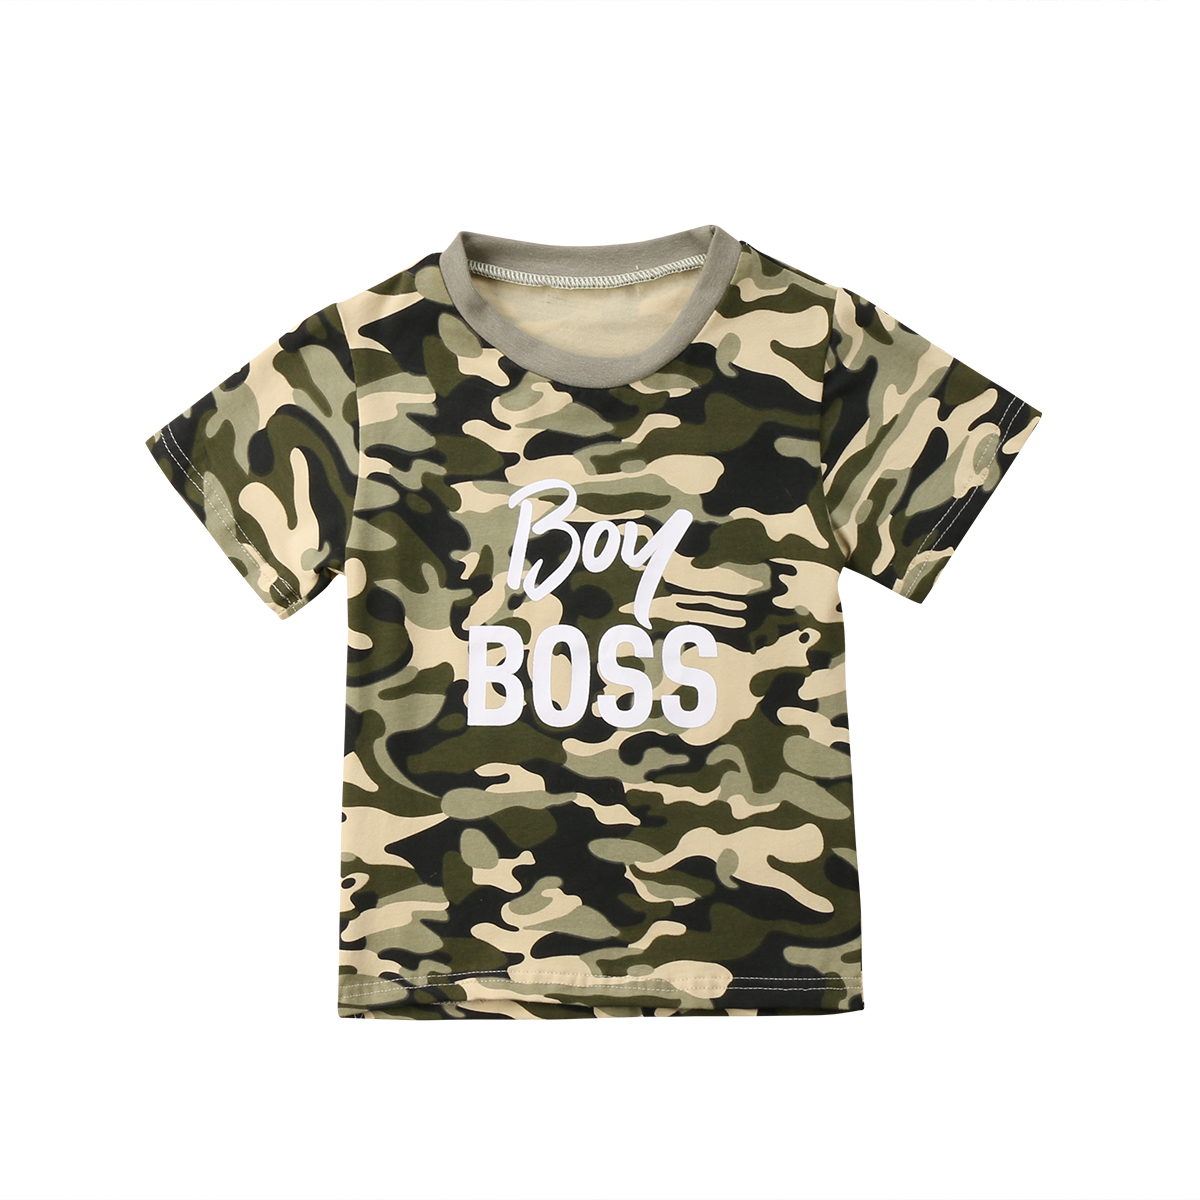 Camouflage Tops Short-Sleeve T-Shirt Newborn Infant Baby-Boy-Girl Cotton Outfits